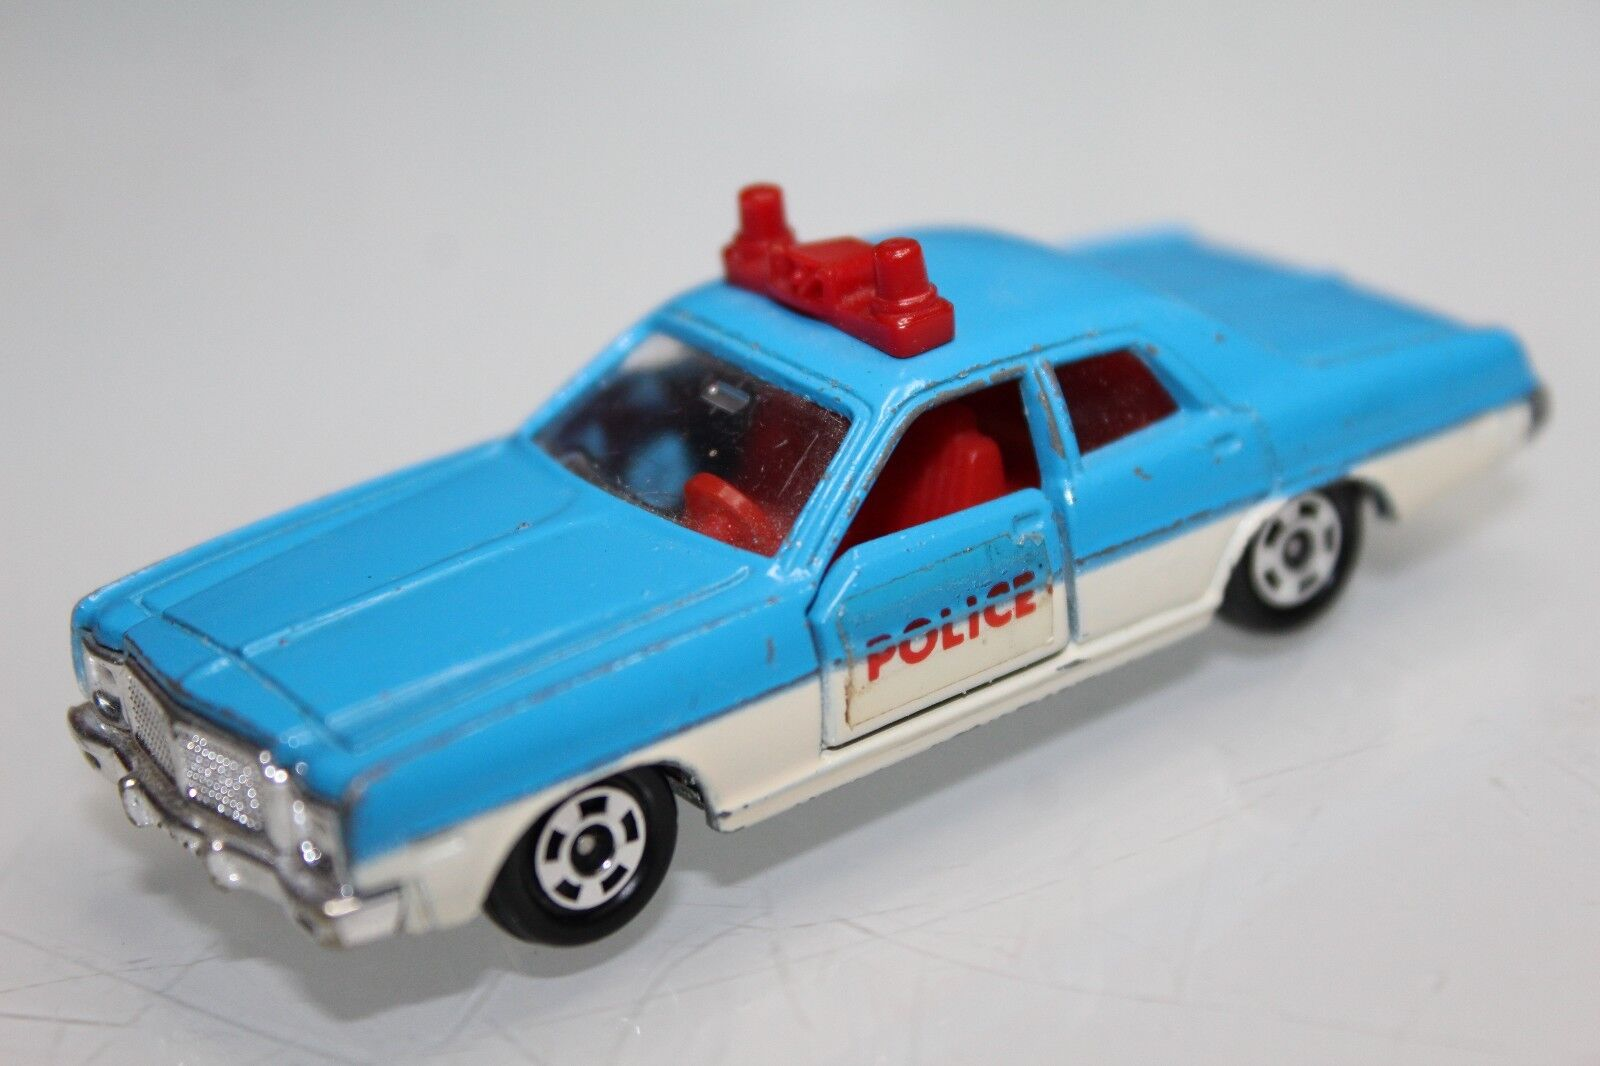 Tomica 1 74 Scale DODGE CgoldNET CUSTOM STATE POLICE No.F8 (blueE) - LOOSE